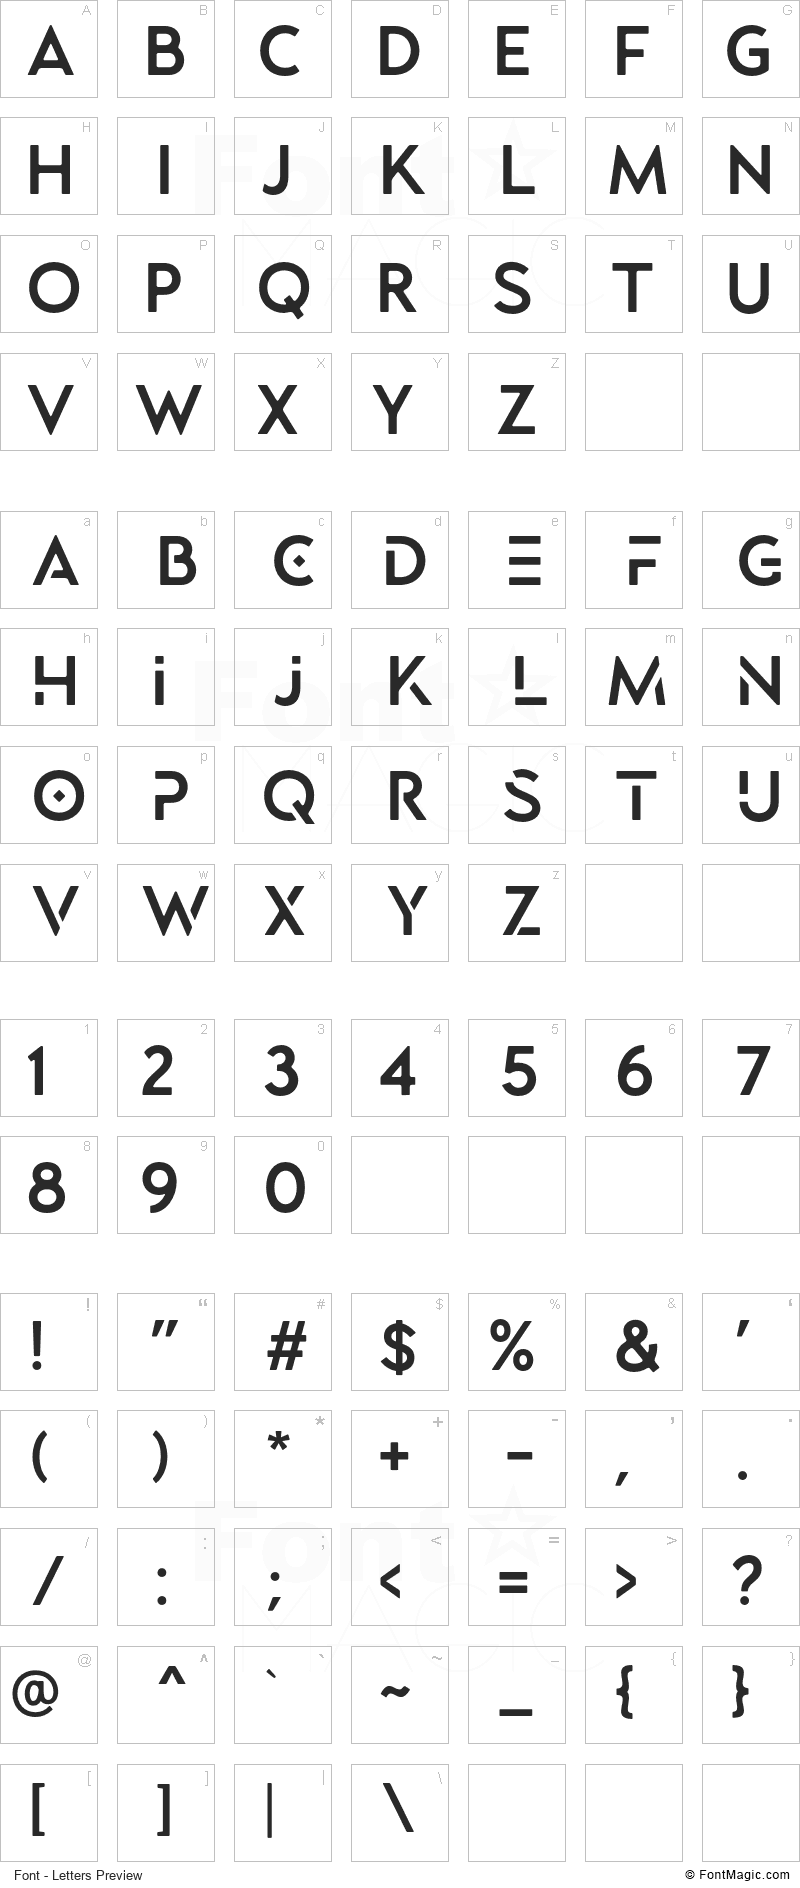 Lequire Font - All Latters Preview Chart